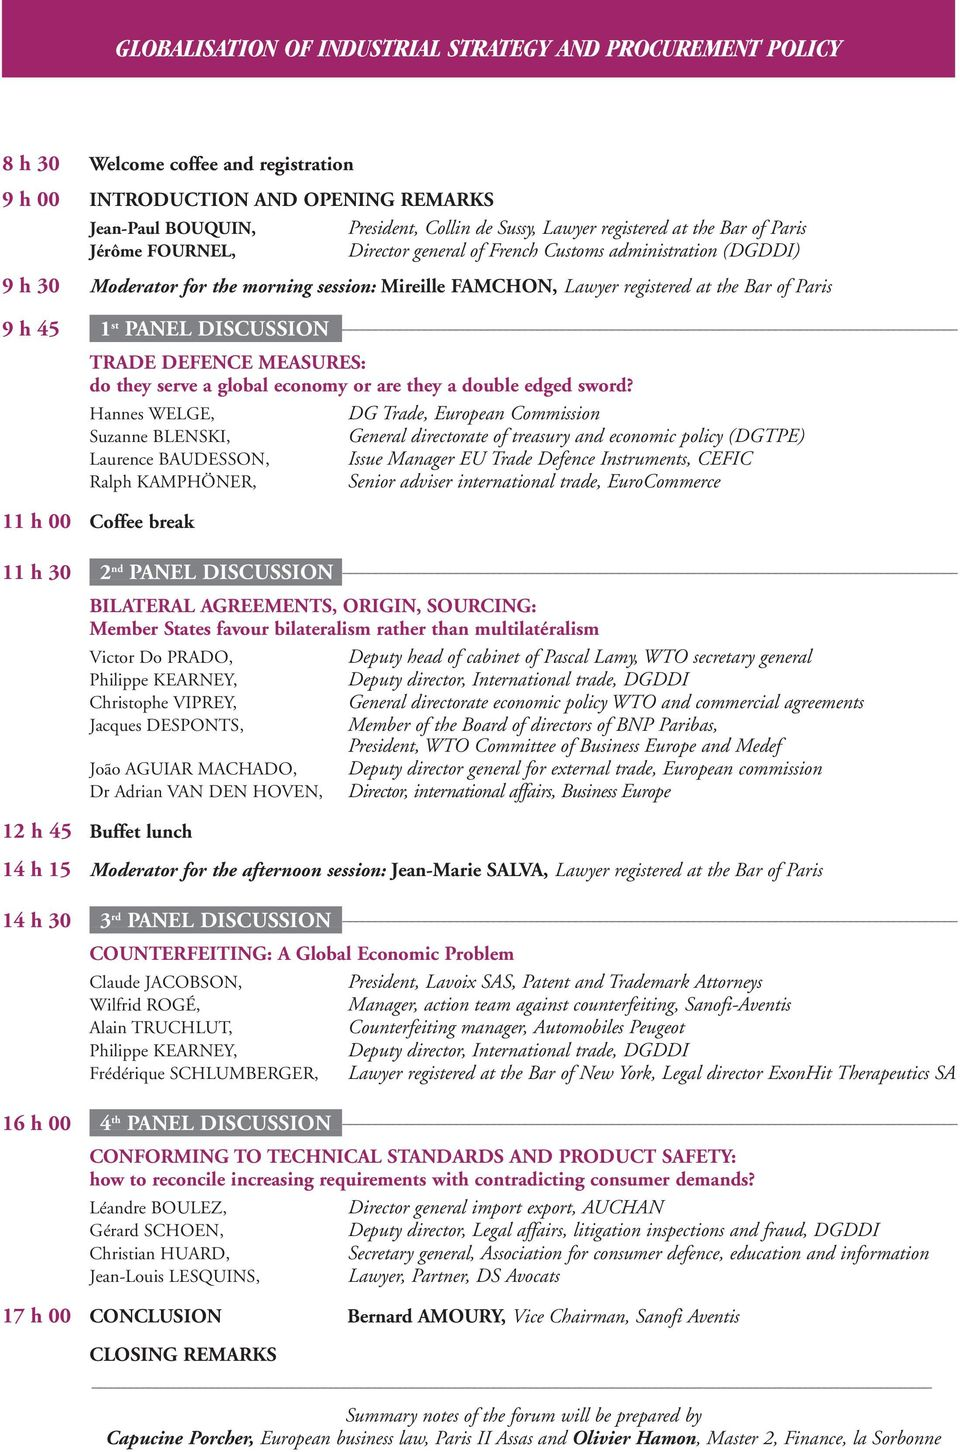 Paris 9 h 45 1 st PANEL DISCUSSION TRADE DEFENCE MEASURES: do they serve a global economy or are they a double edged sword?